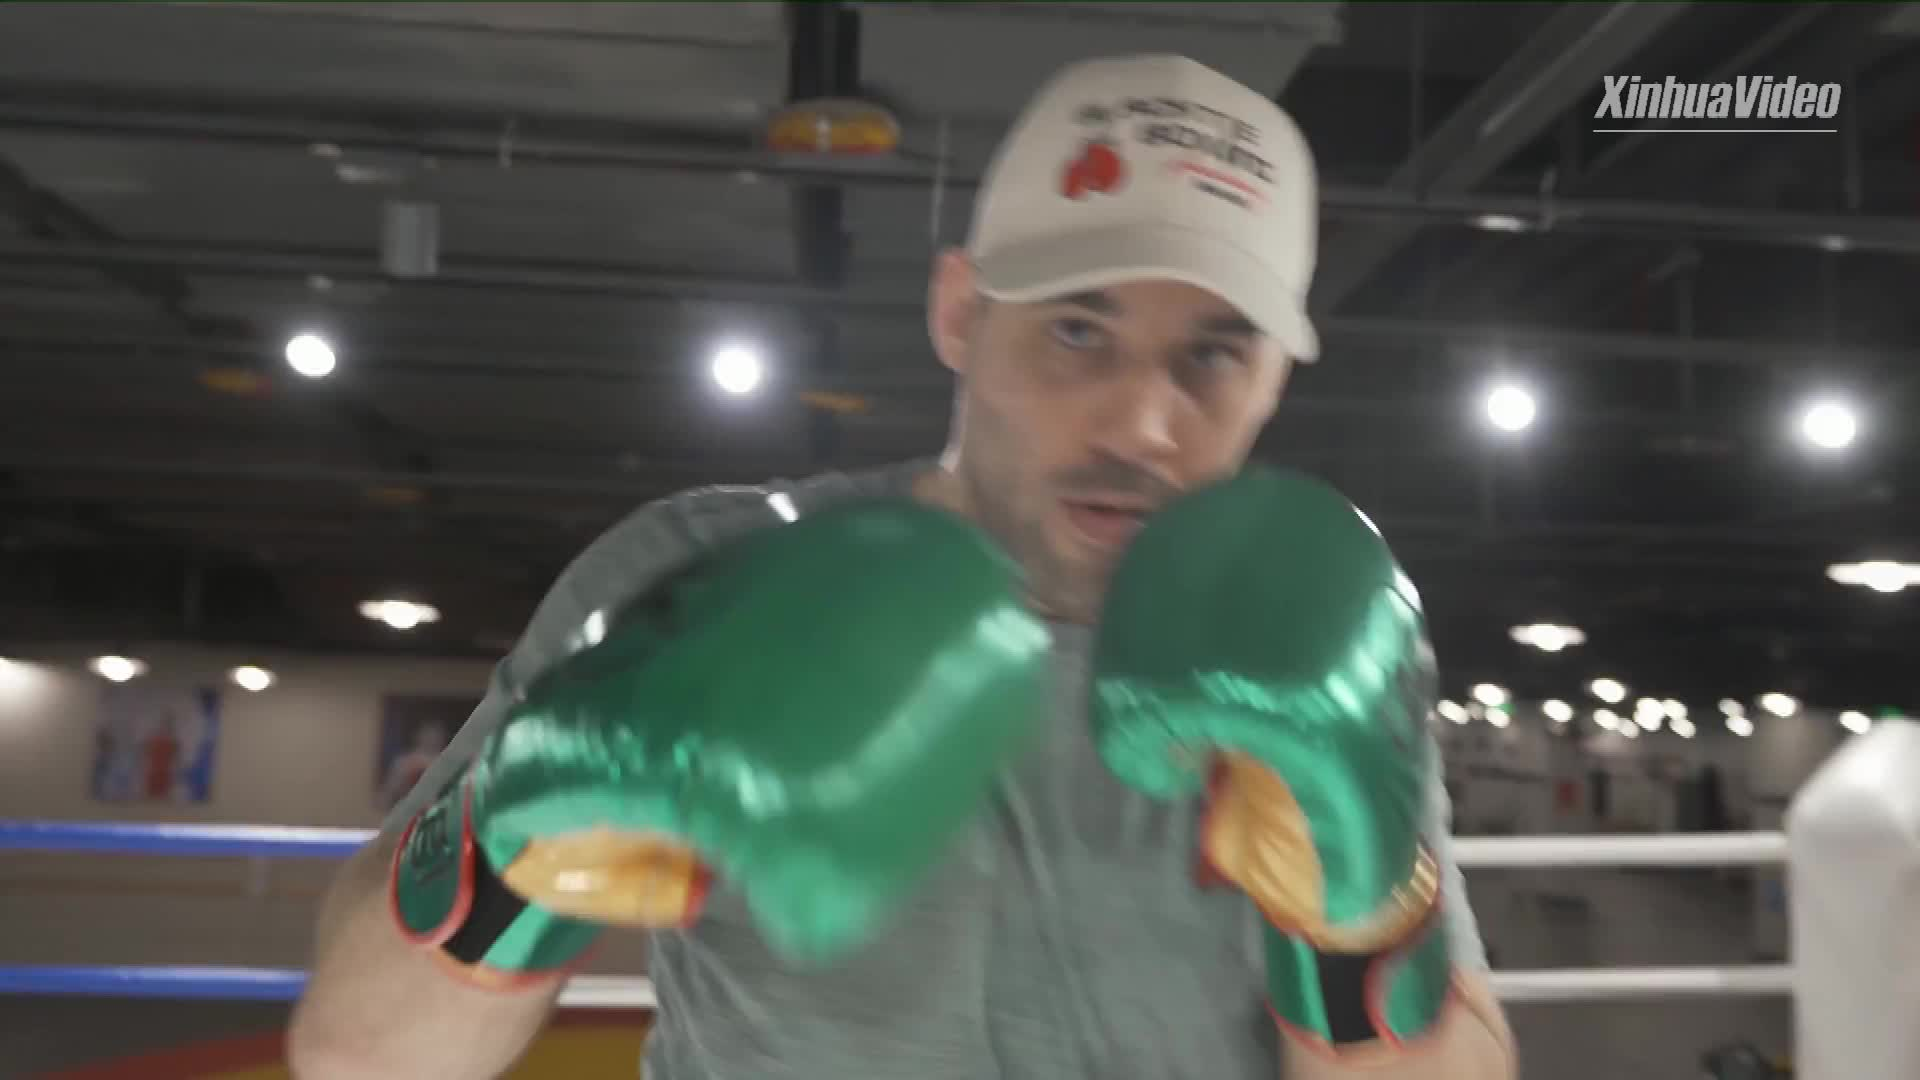 Vlog: Former Croatian boxing champion's meaningful life in China